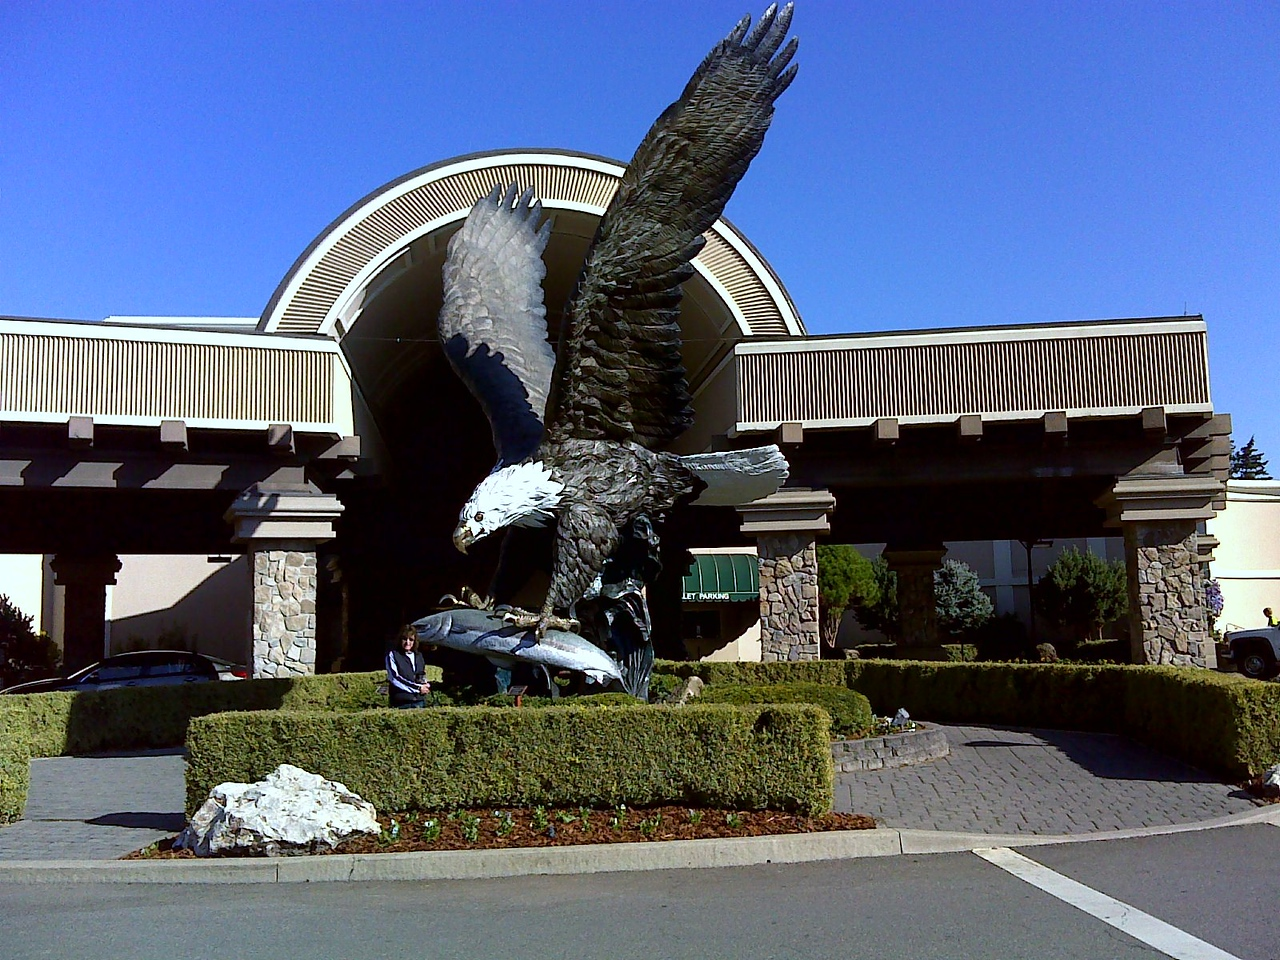 This bald eagle in front of the Seven Feathers casino was very impressive up close!